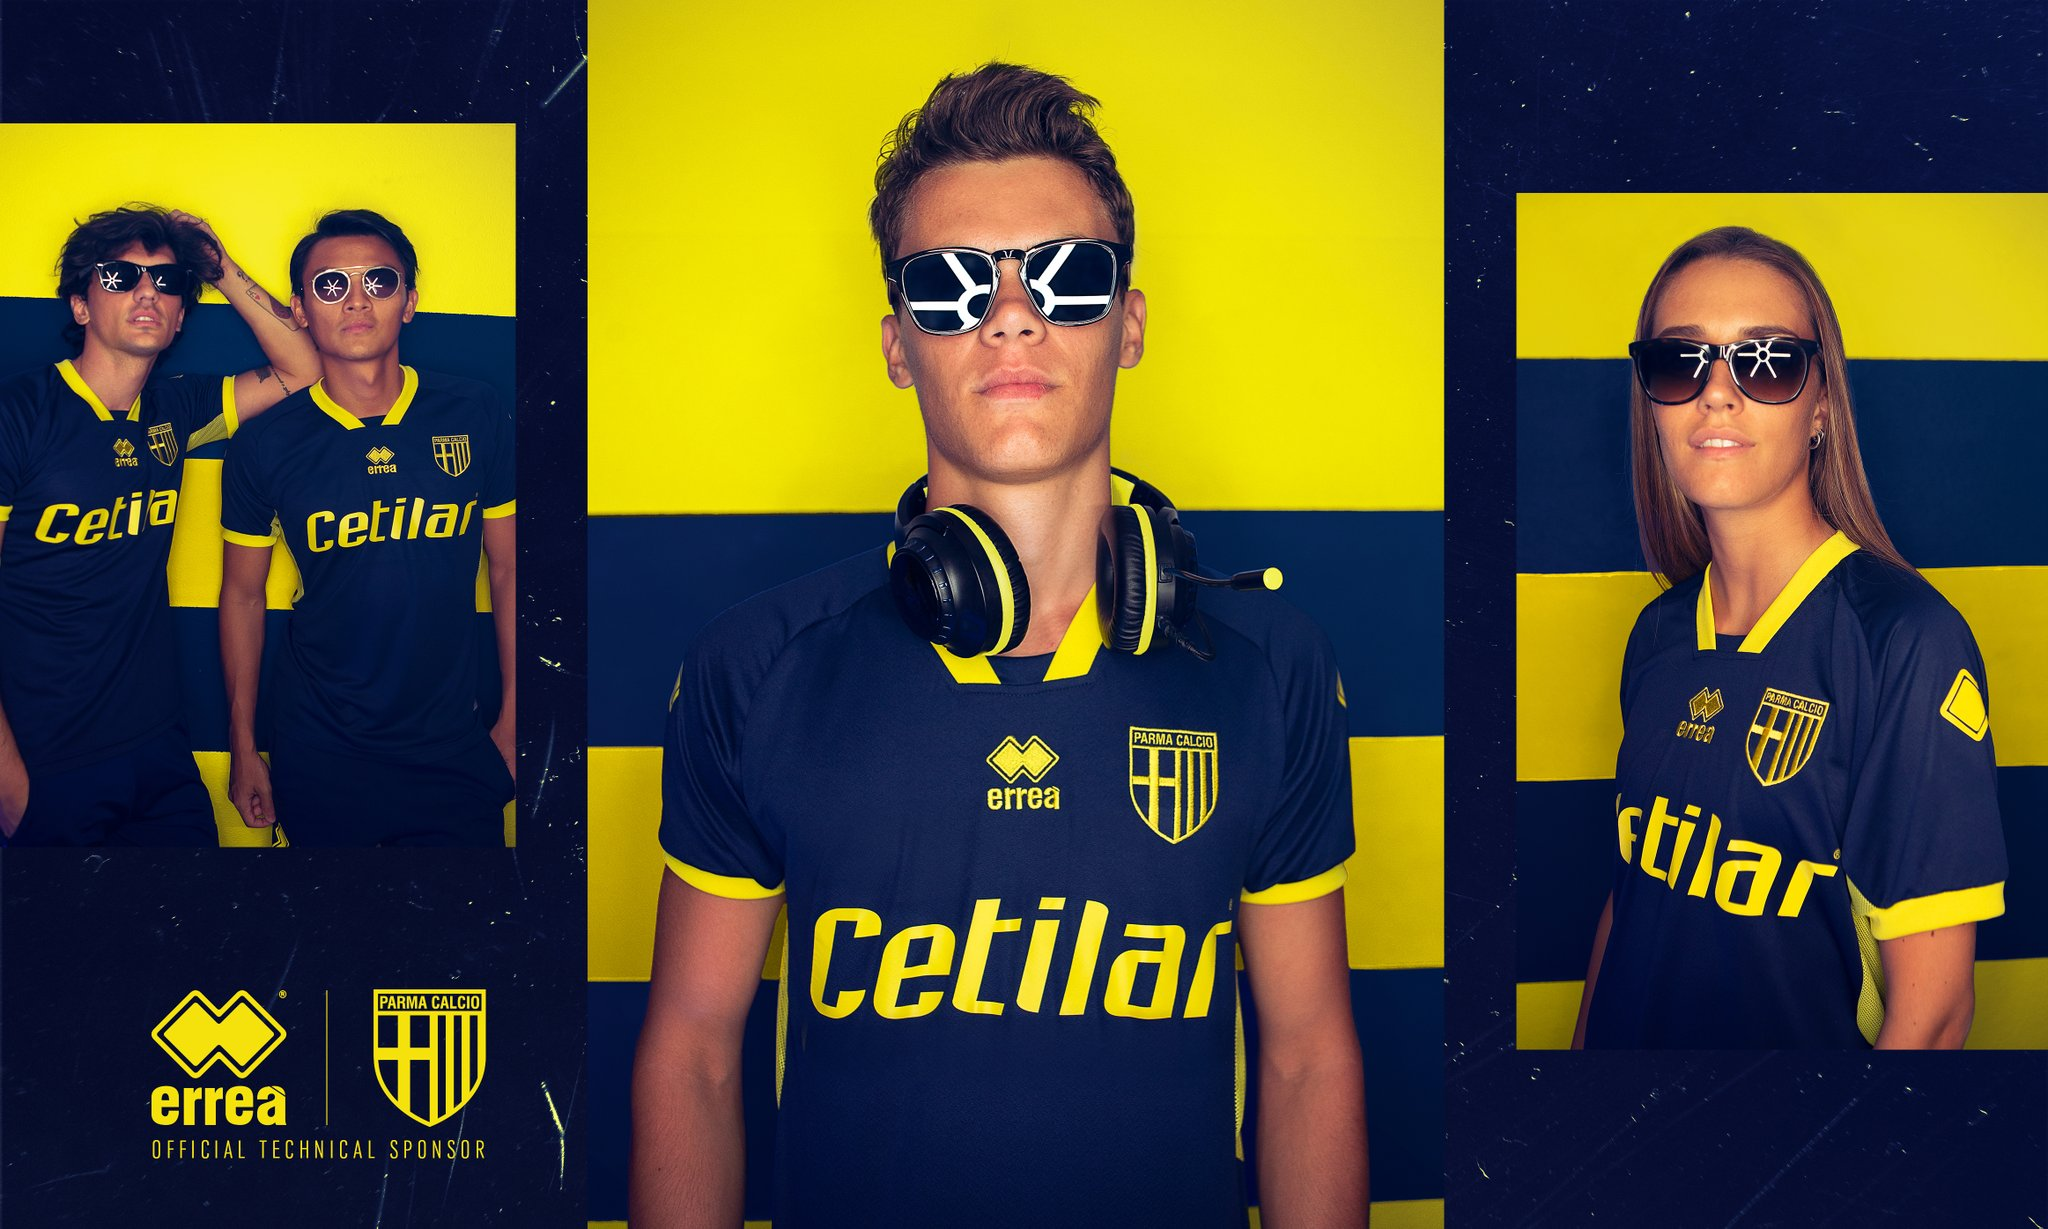 Parma 2020-21 Erreà Third Kit | 20/21 Kits | Football shirt blog